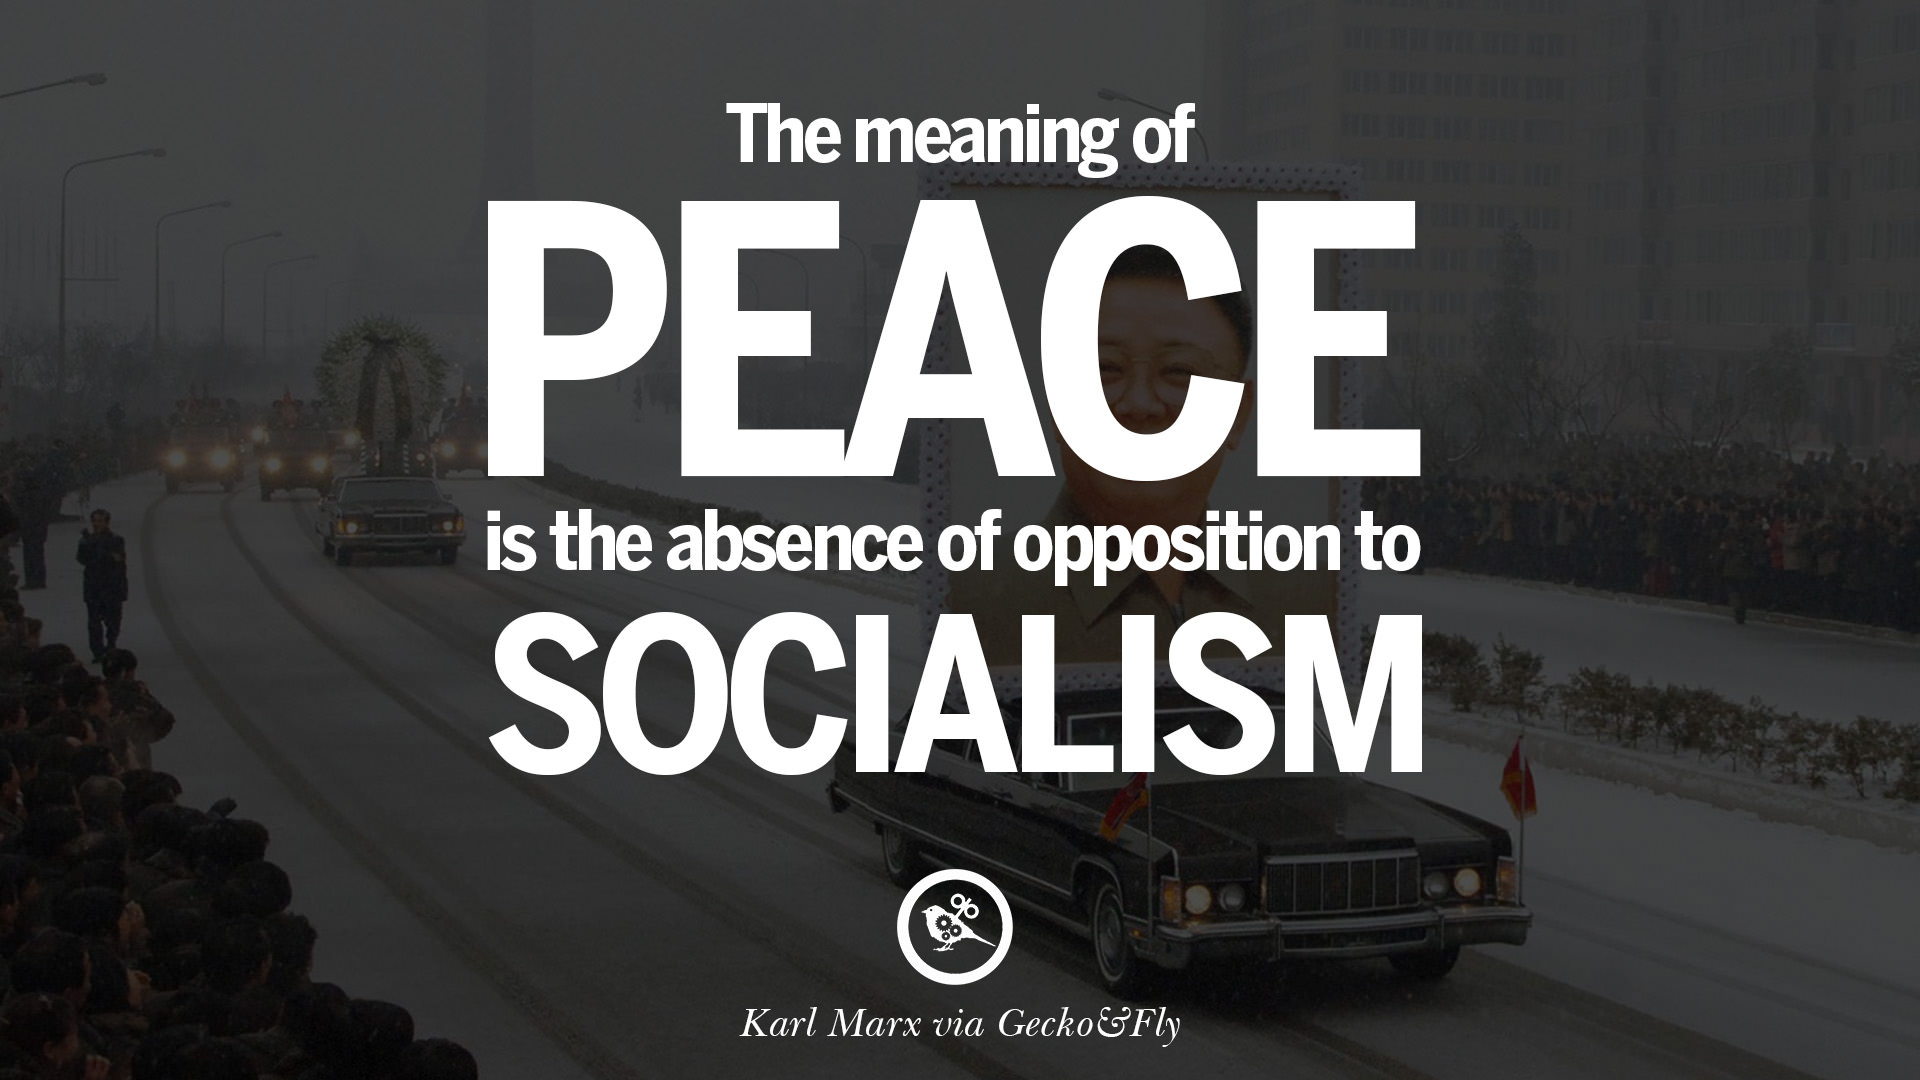 theories of karl marx It would be more accurate to say that karl marx has a theory of history rather than a theory of socialism in his theory of history, socialism is a major part marx's theory of history is that all human history is the history of class struggle.